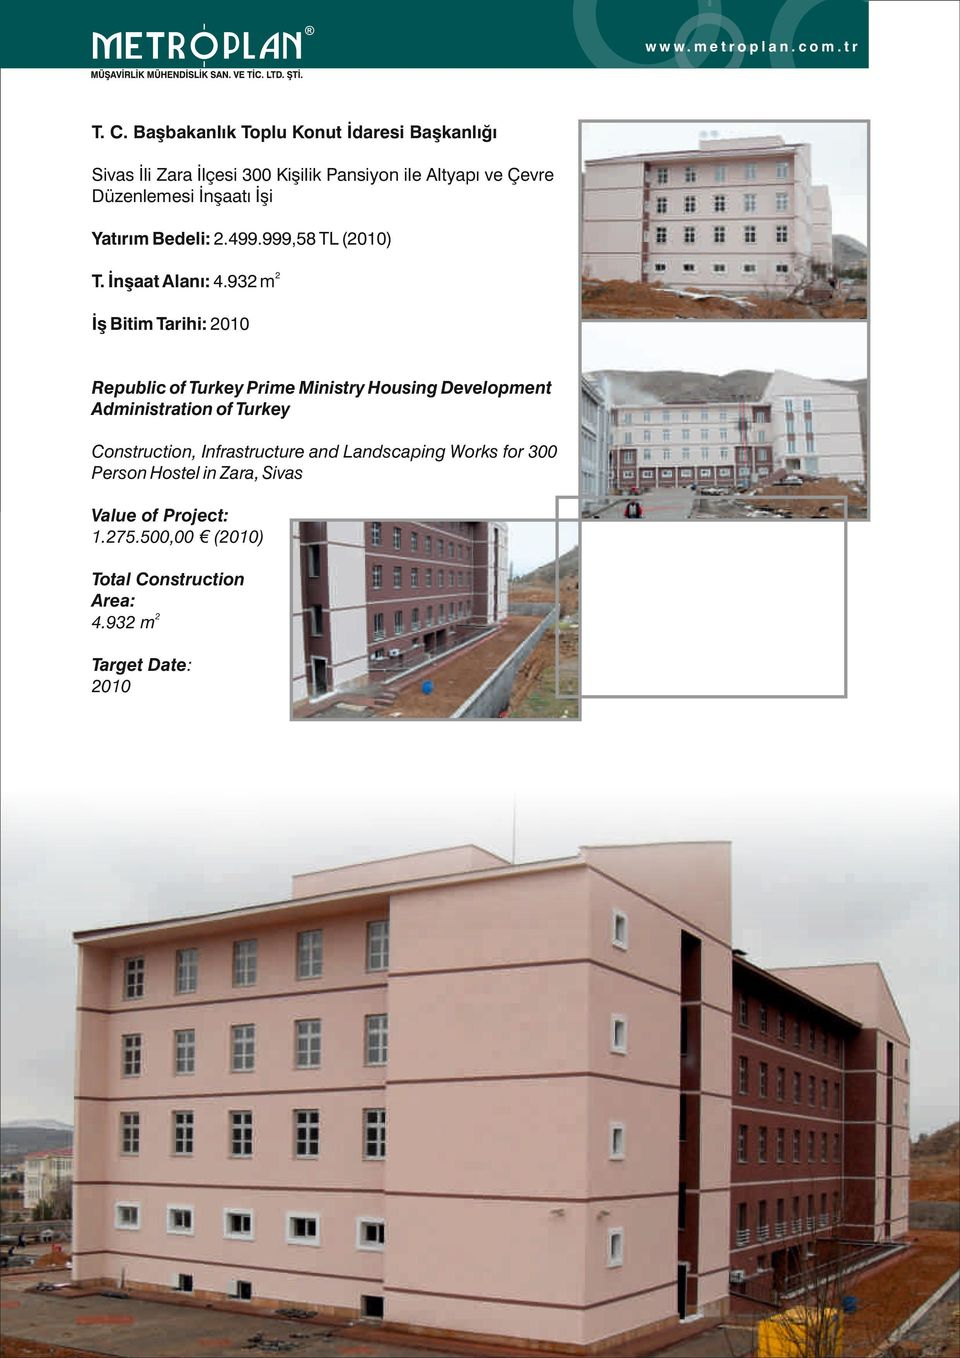 93 m İş Bitim Tarihi: 010 Republic of Turkey Prime Ministry Housing Development Administration of Turkey